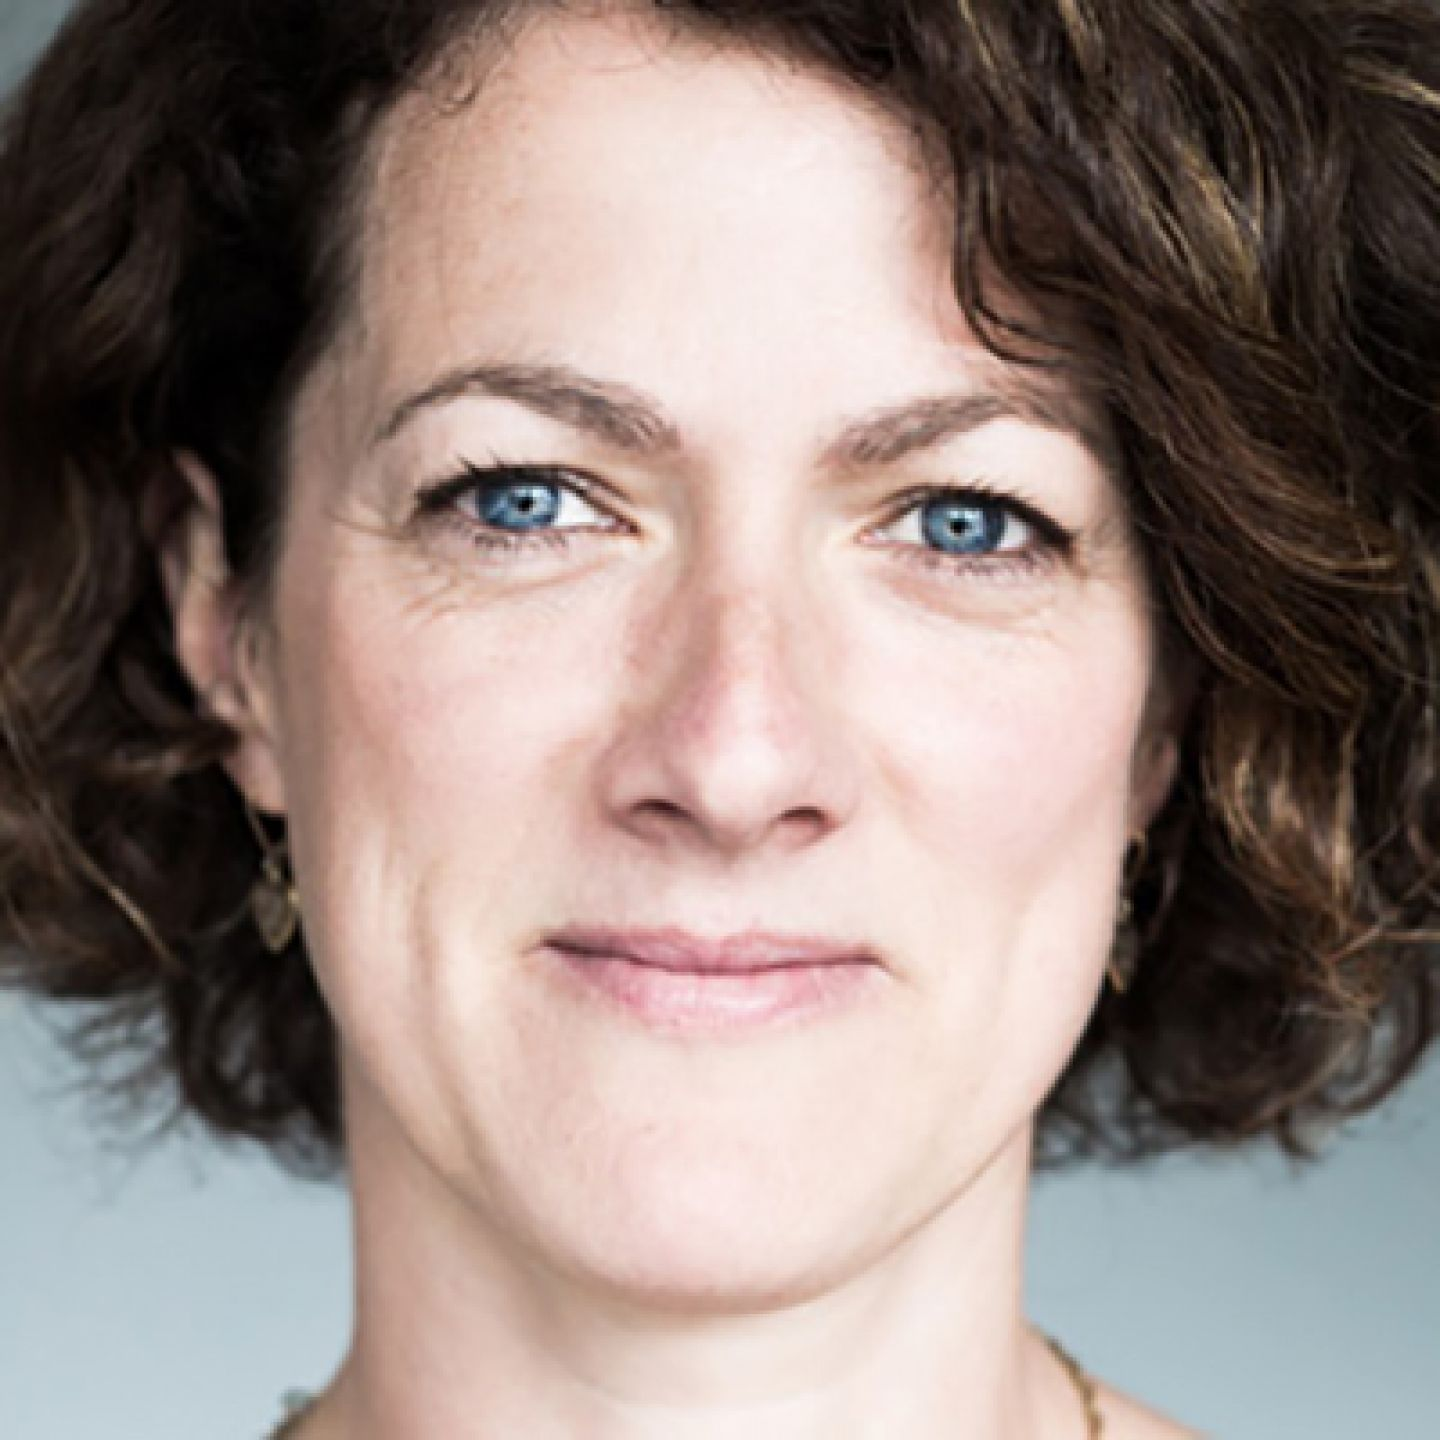 Emily Pedder is a Subject Course Co-ordinator (Creative Writing) at City, University of London